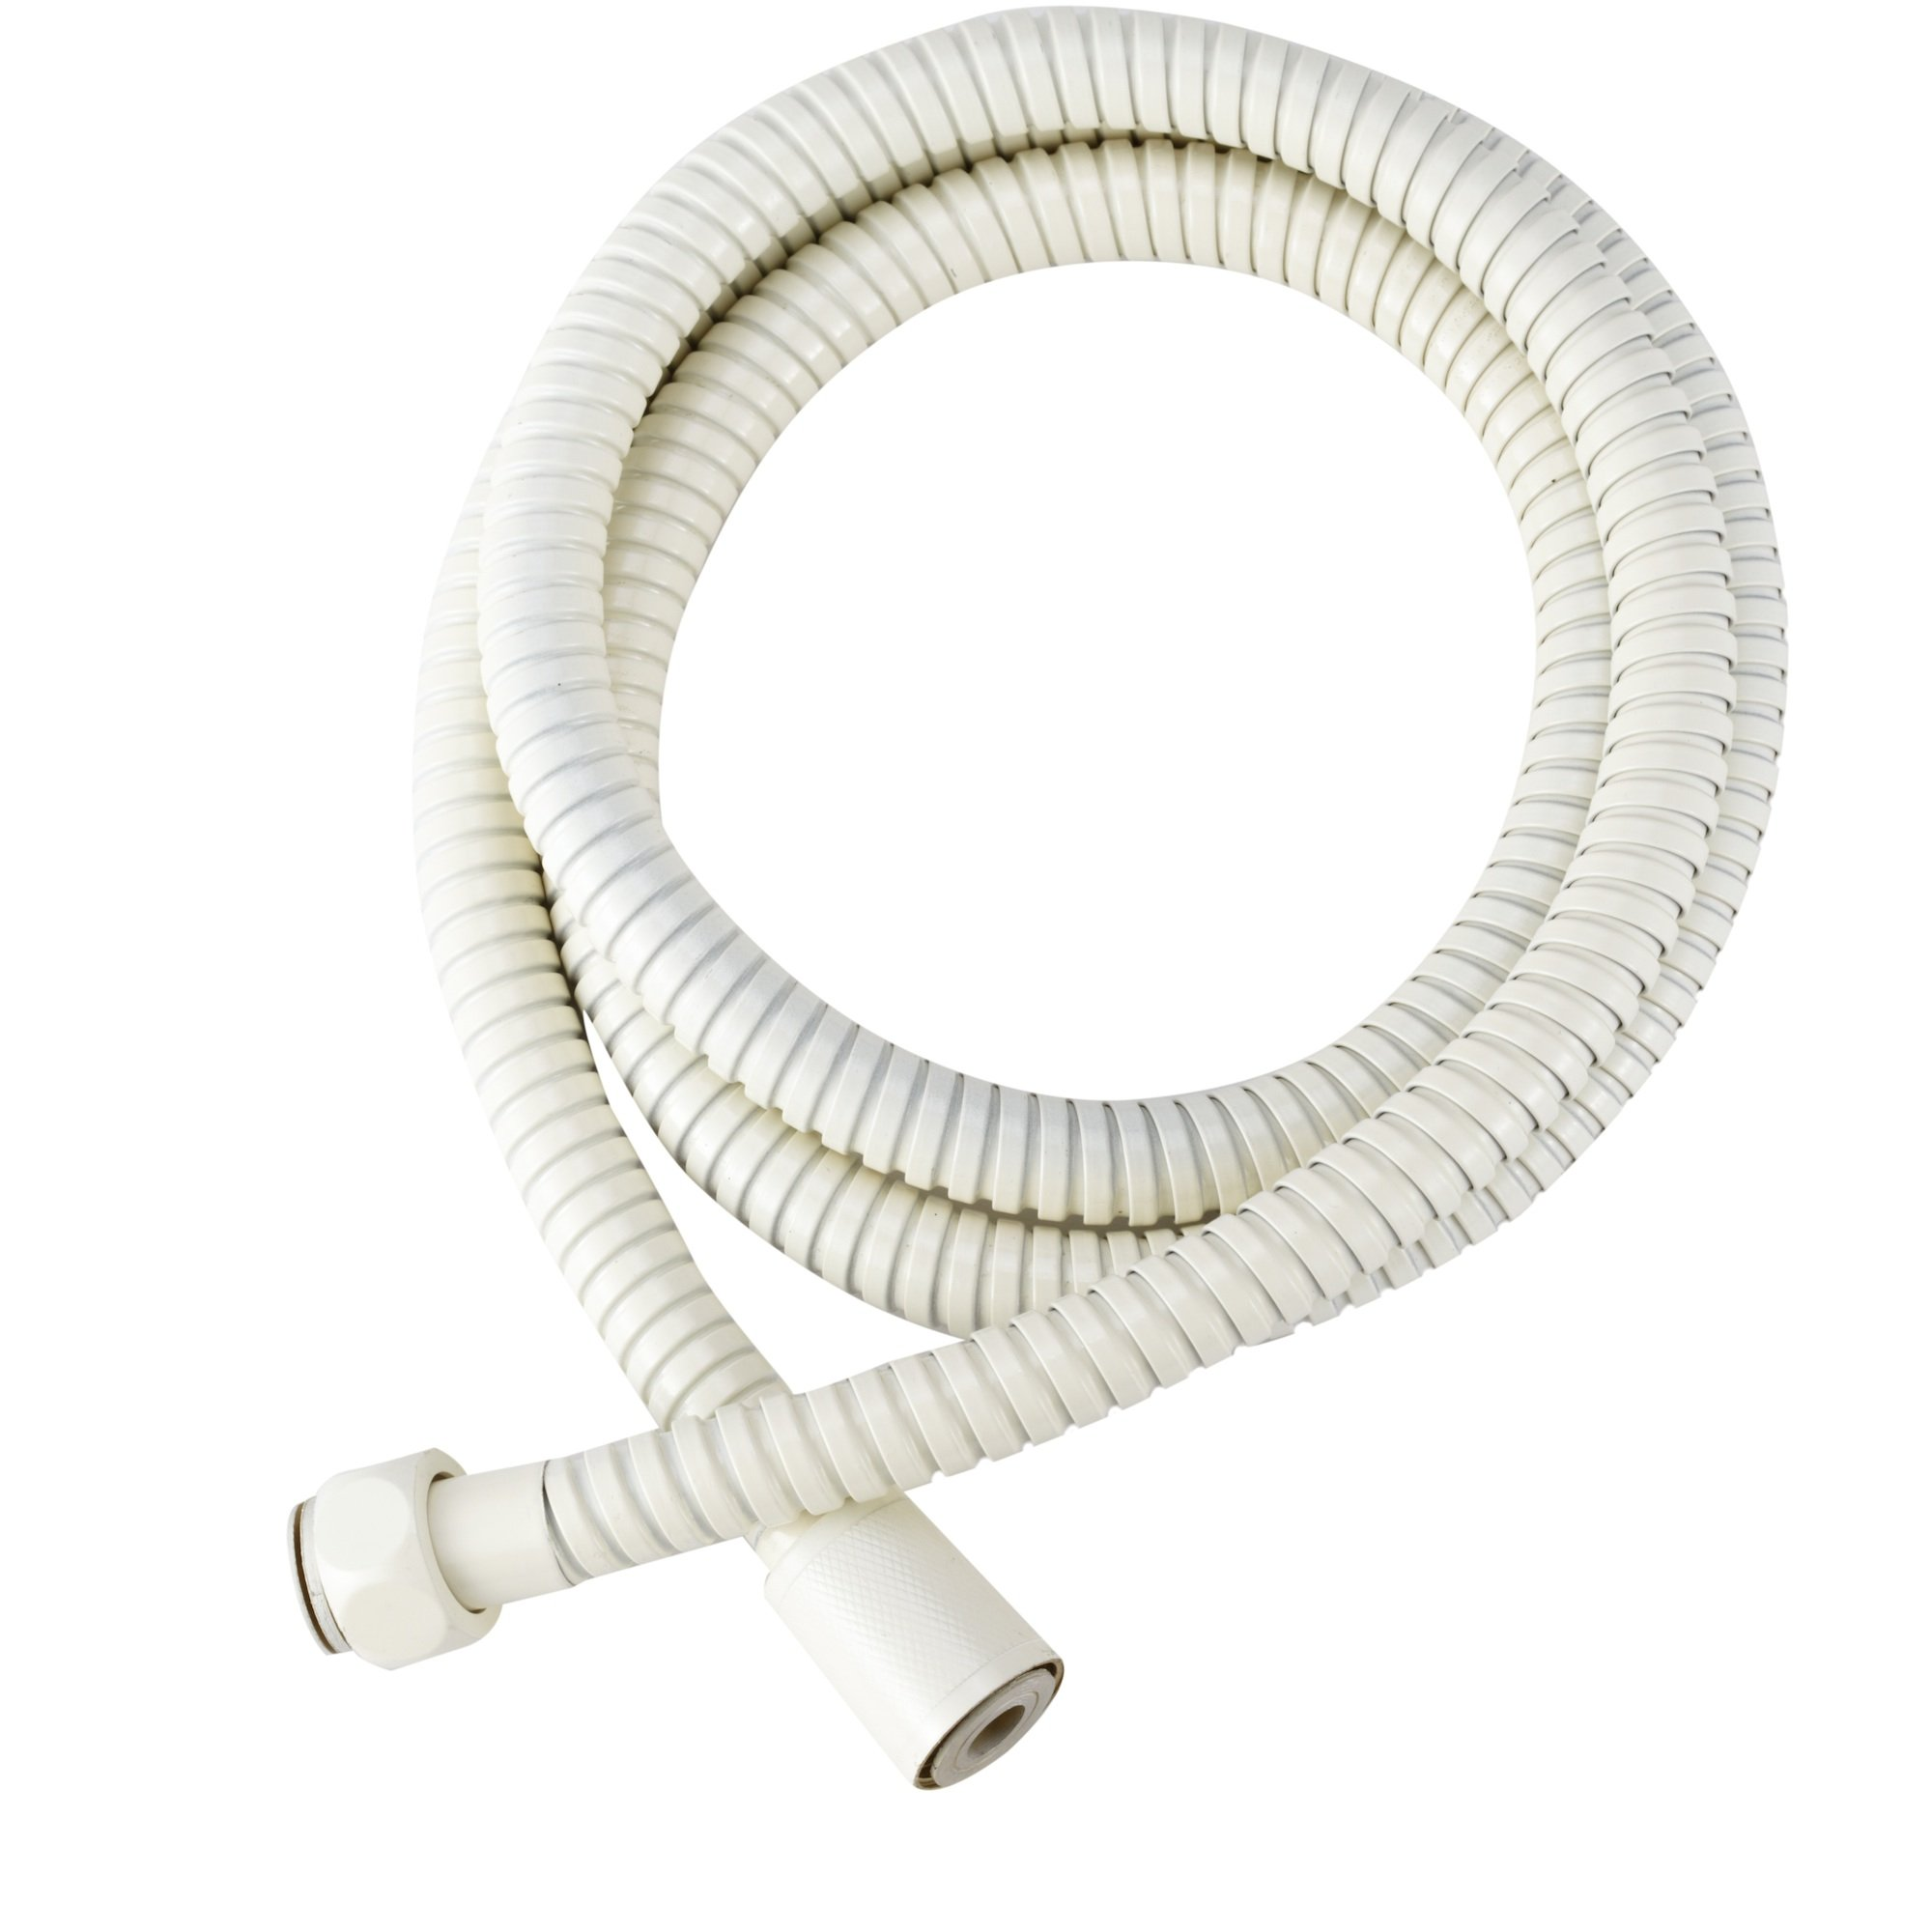 Dura Faucet DF-SA200-BQ RV 60-inch Stainless Steel Shower Hose (Bisque Parchment) by Dura Faucet